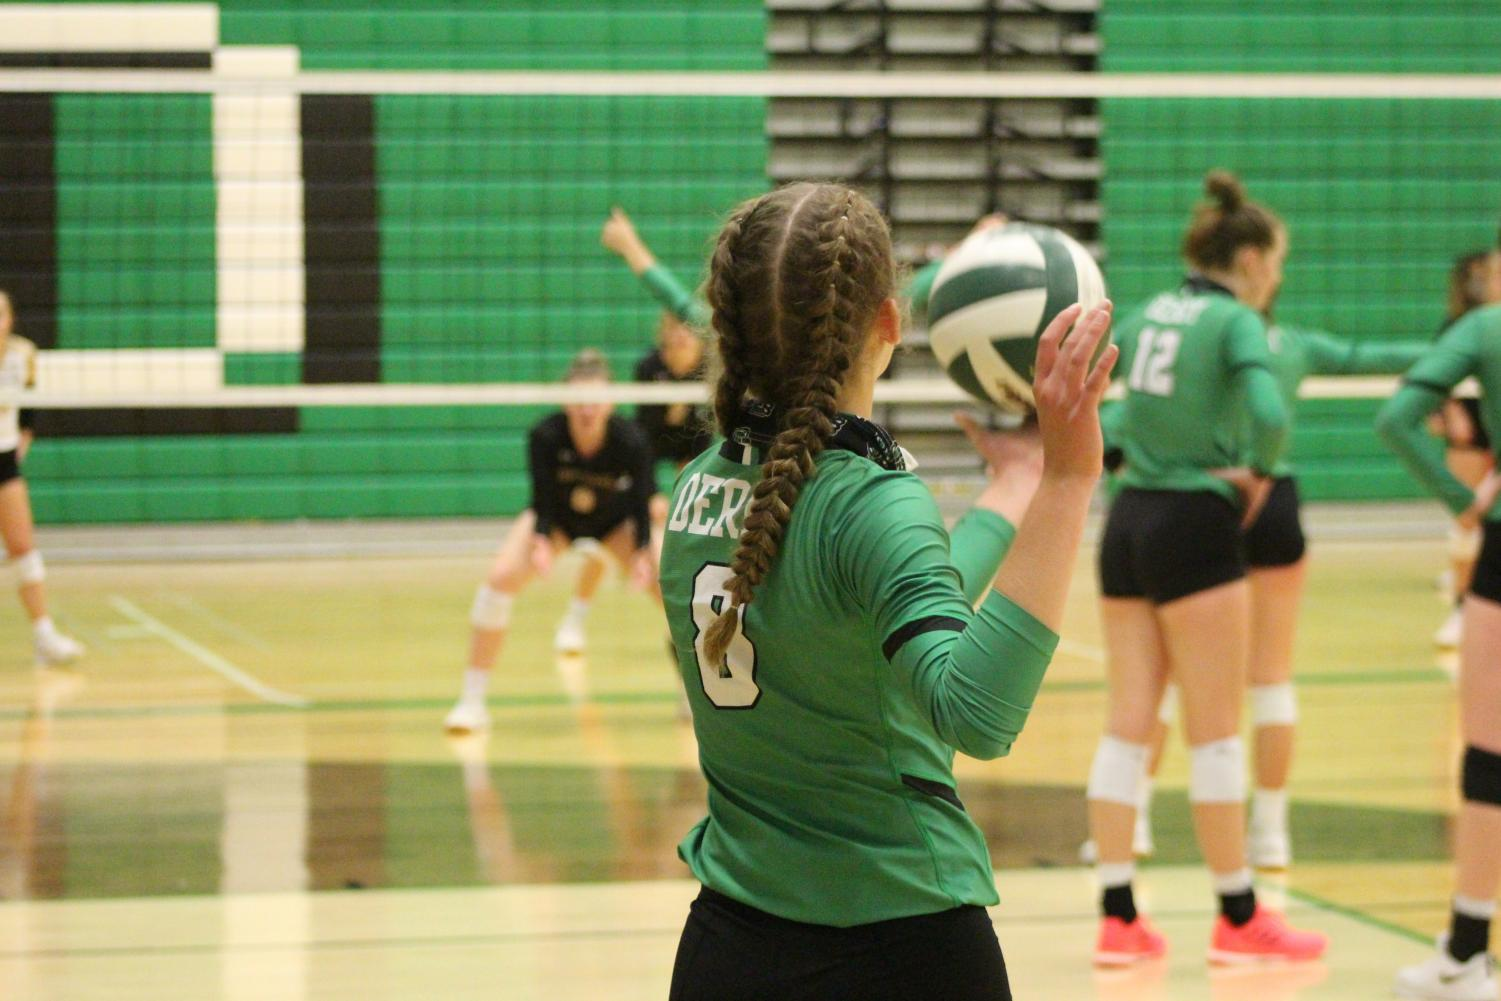 Varsity+Volleyball+Tournament+%28Photos+By+Kaitlyn+Jolly%29